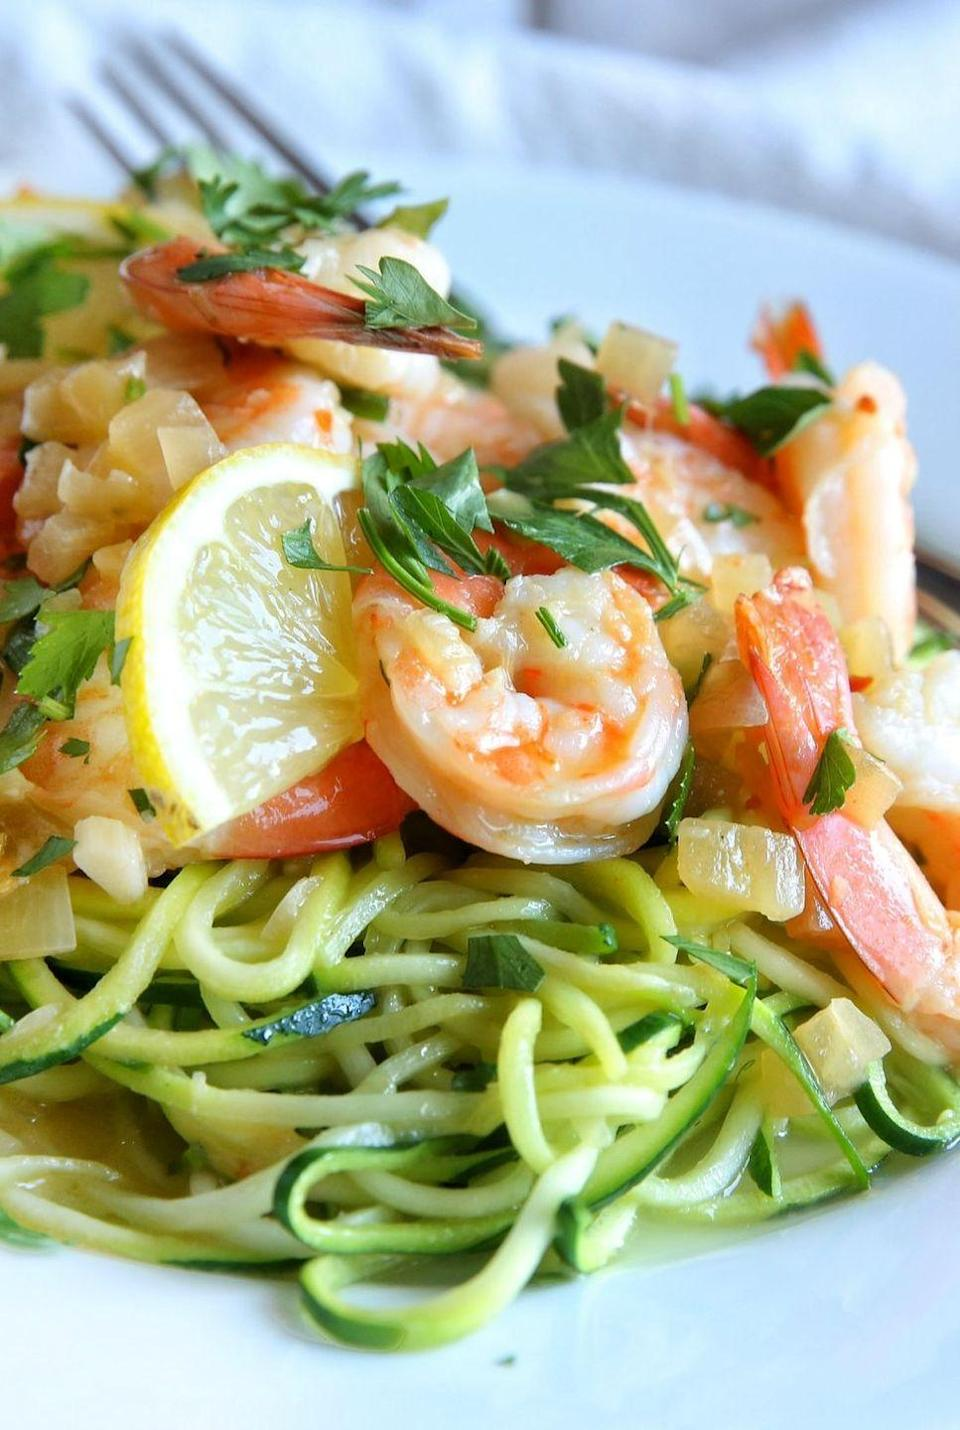 """<p>This healthy spin on shrimp scampi swaps zucchini noodles for pasta.<br><br>Get the recipe from <a href=""""https://www.delish.com/cooking/recipe-ideas/recipes/a47388/shrimp-scampi-zoodles-recipe/"""" rel=""""nofollow noopener"""" target=""""_blank"""" data-ylk=""""slk:Delish"""" class=""""link rapid-noclick-resp"""">Delish</a>.</p>"""